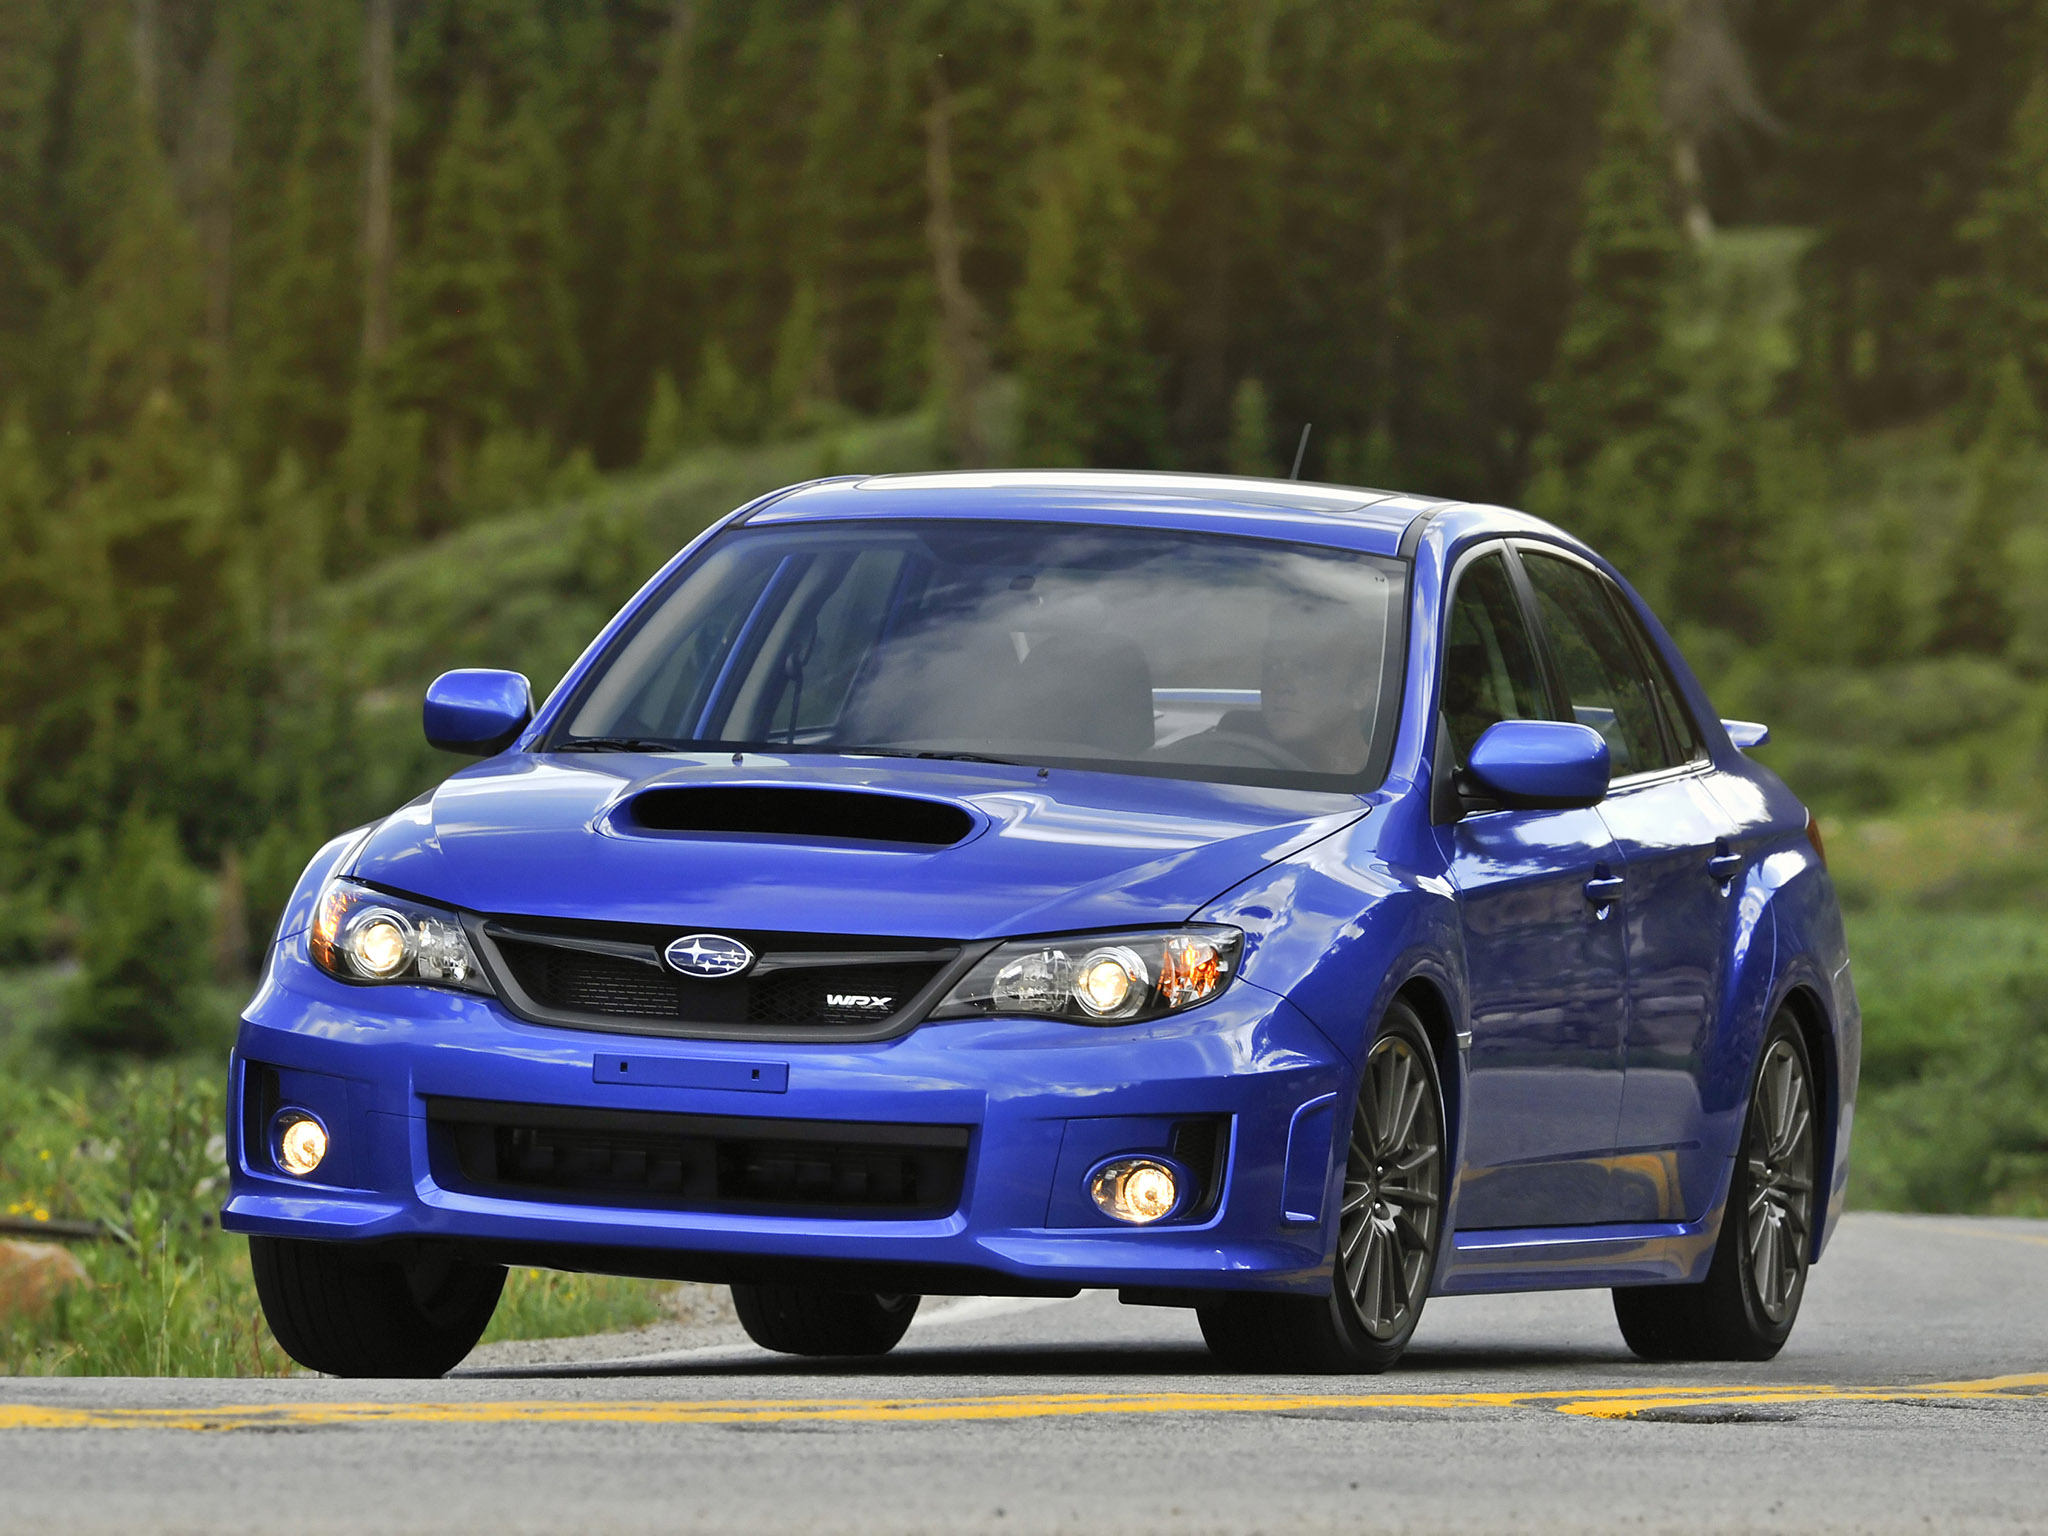 2010 subaru impreza wrx sti hatchback review